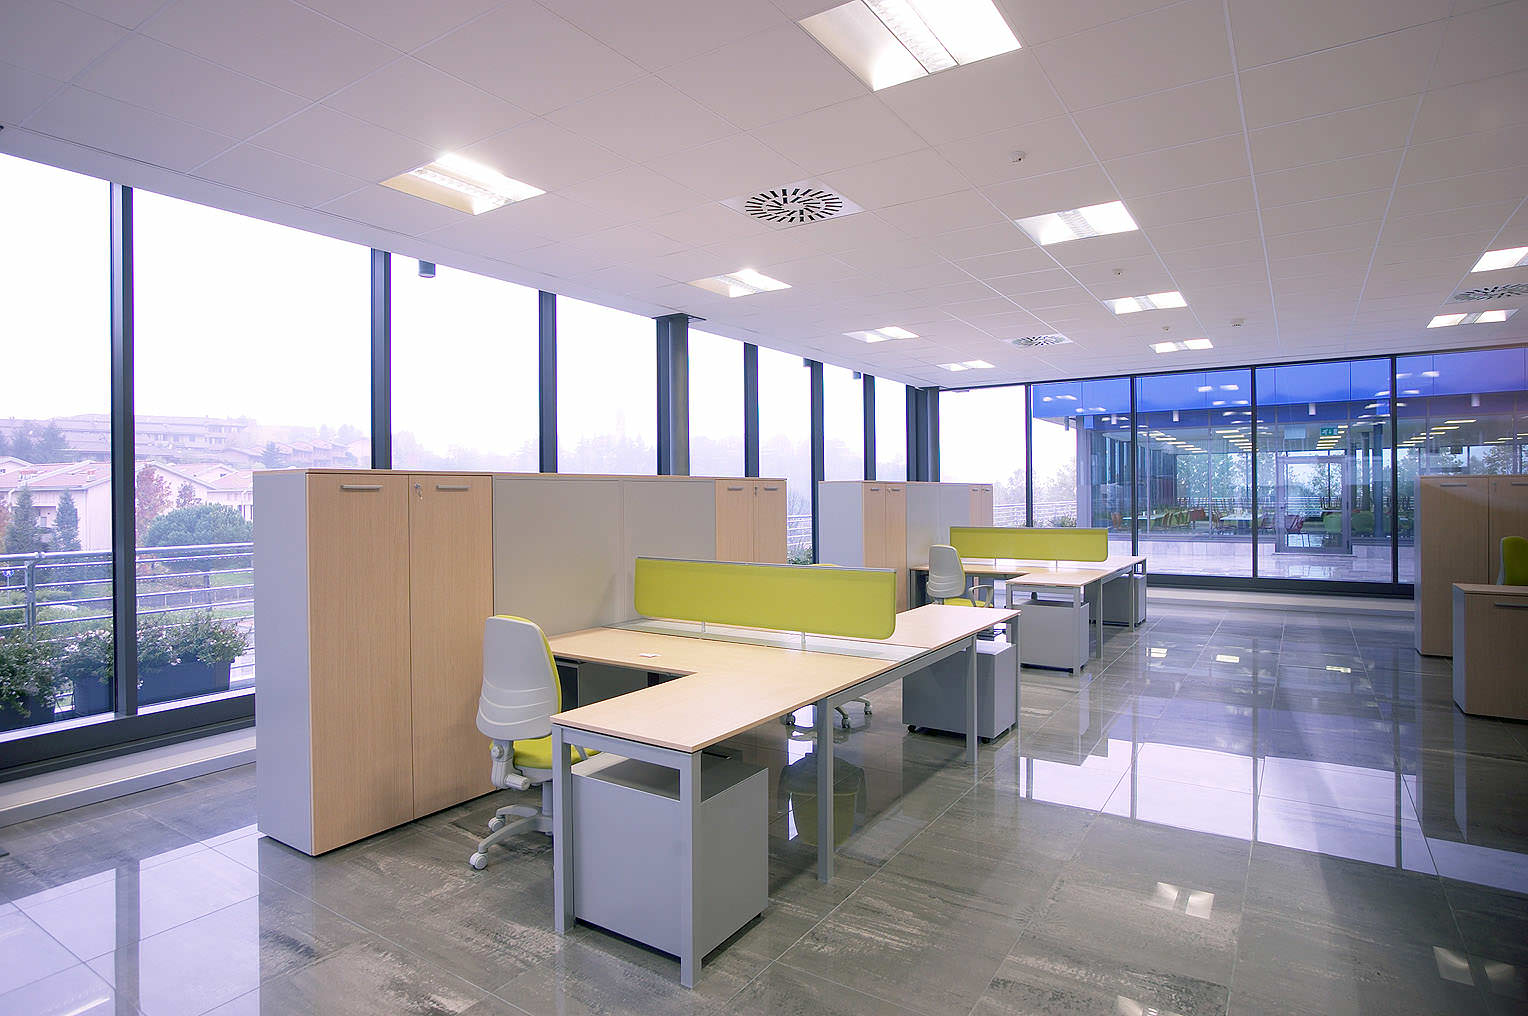 Formenti giovenzana office furniture ivm office for Erreci arredamenti